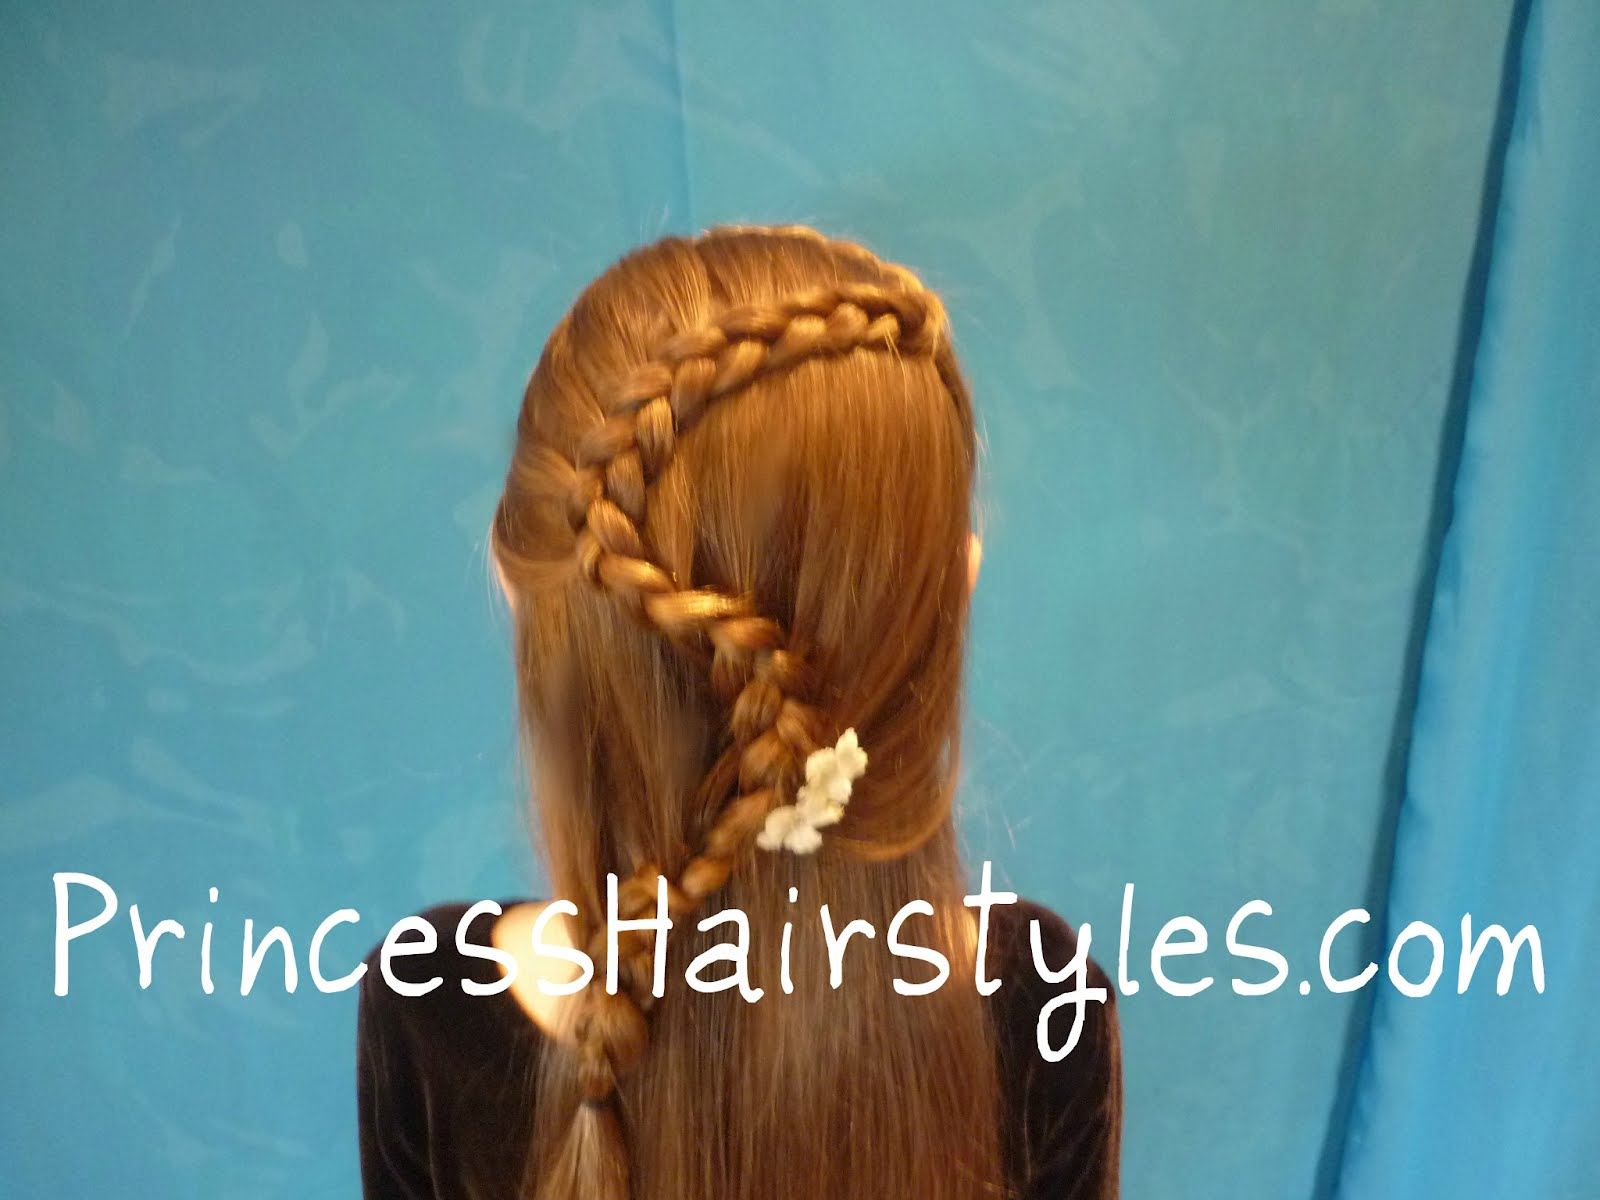 Winding snake braid hairstyles for girls princess hairstyles zig zag french braid ccuart Images